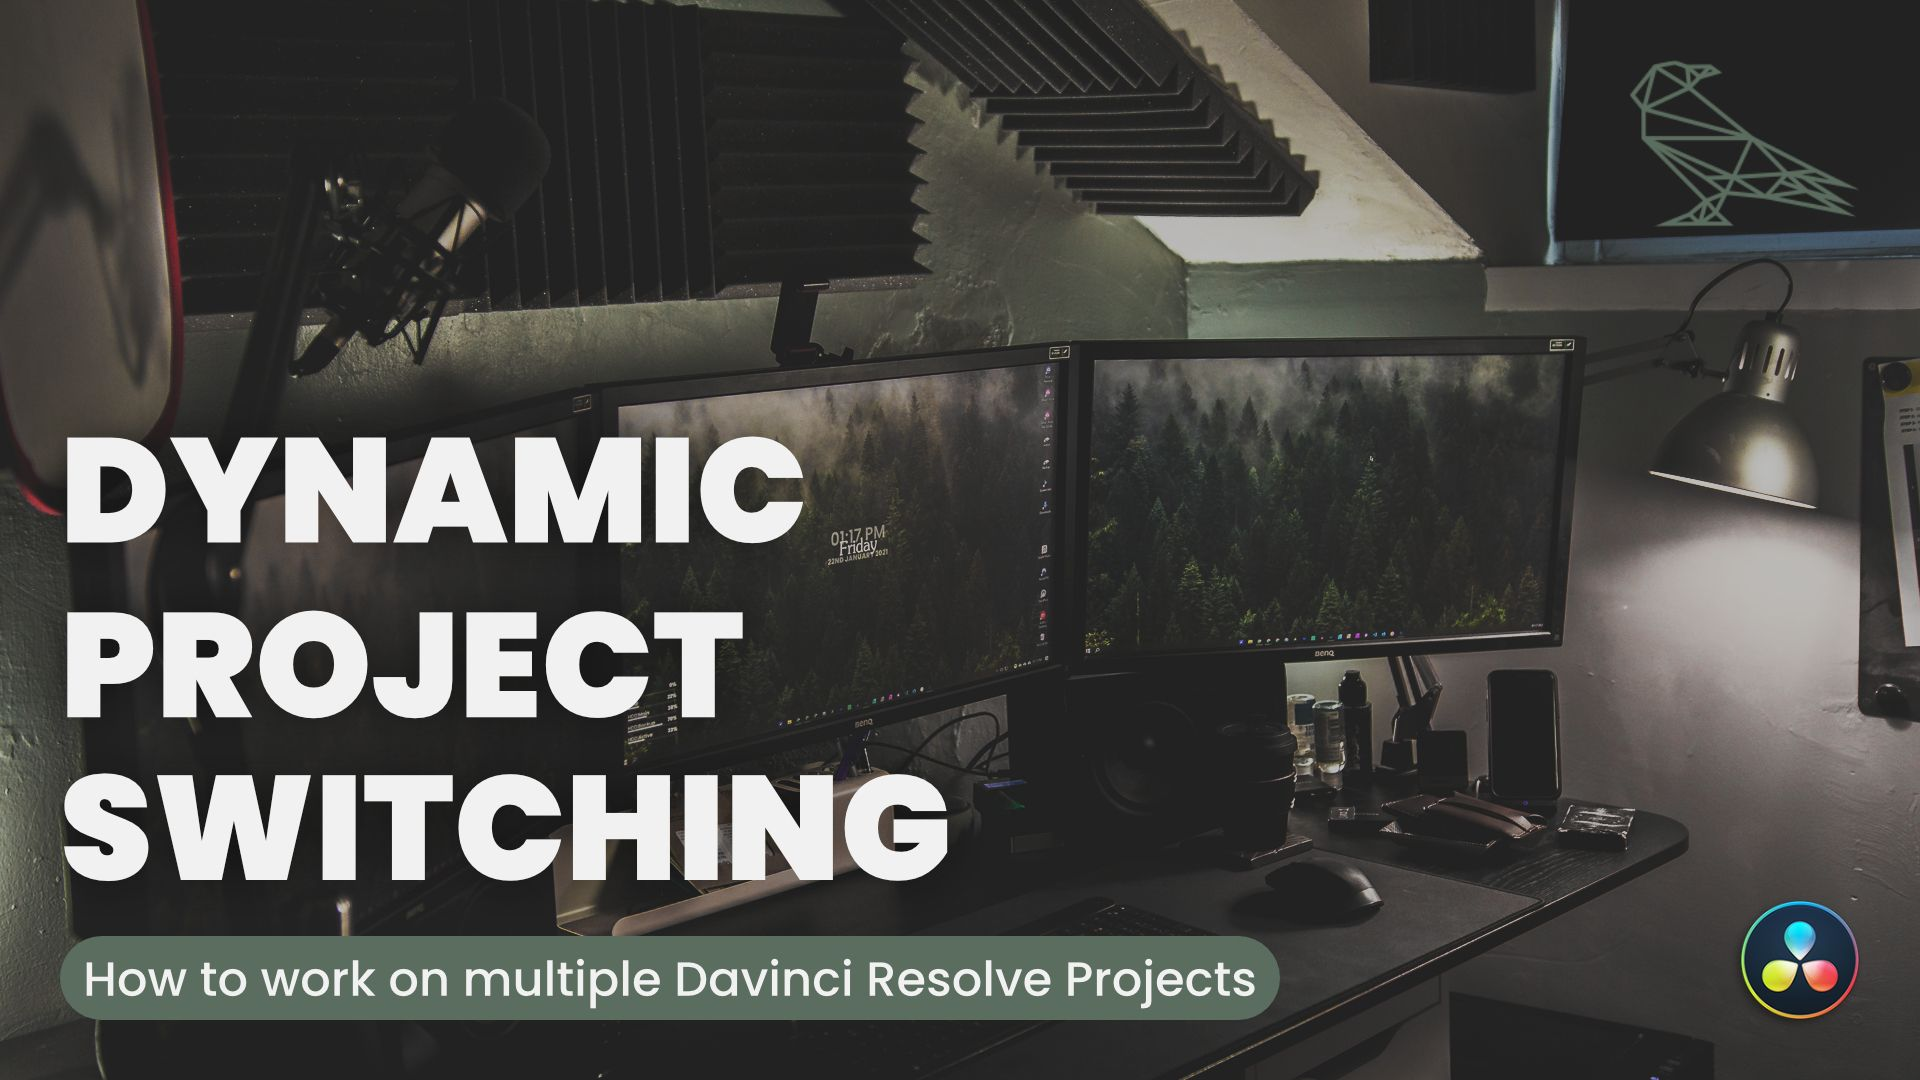 Work On Multiple Projects At The Same Time In Davinci Resolve - Dynamic Project Switching